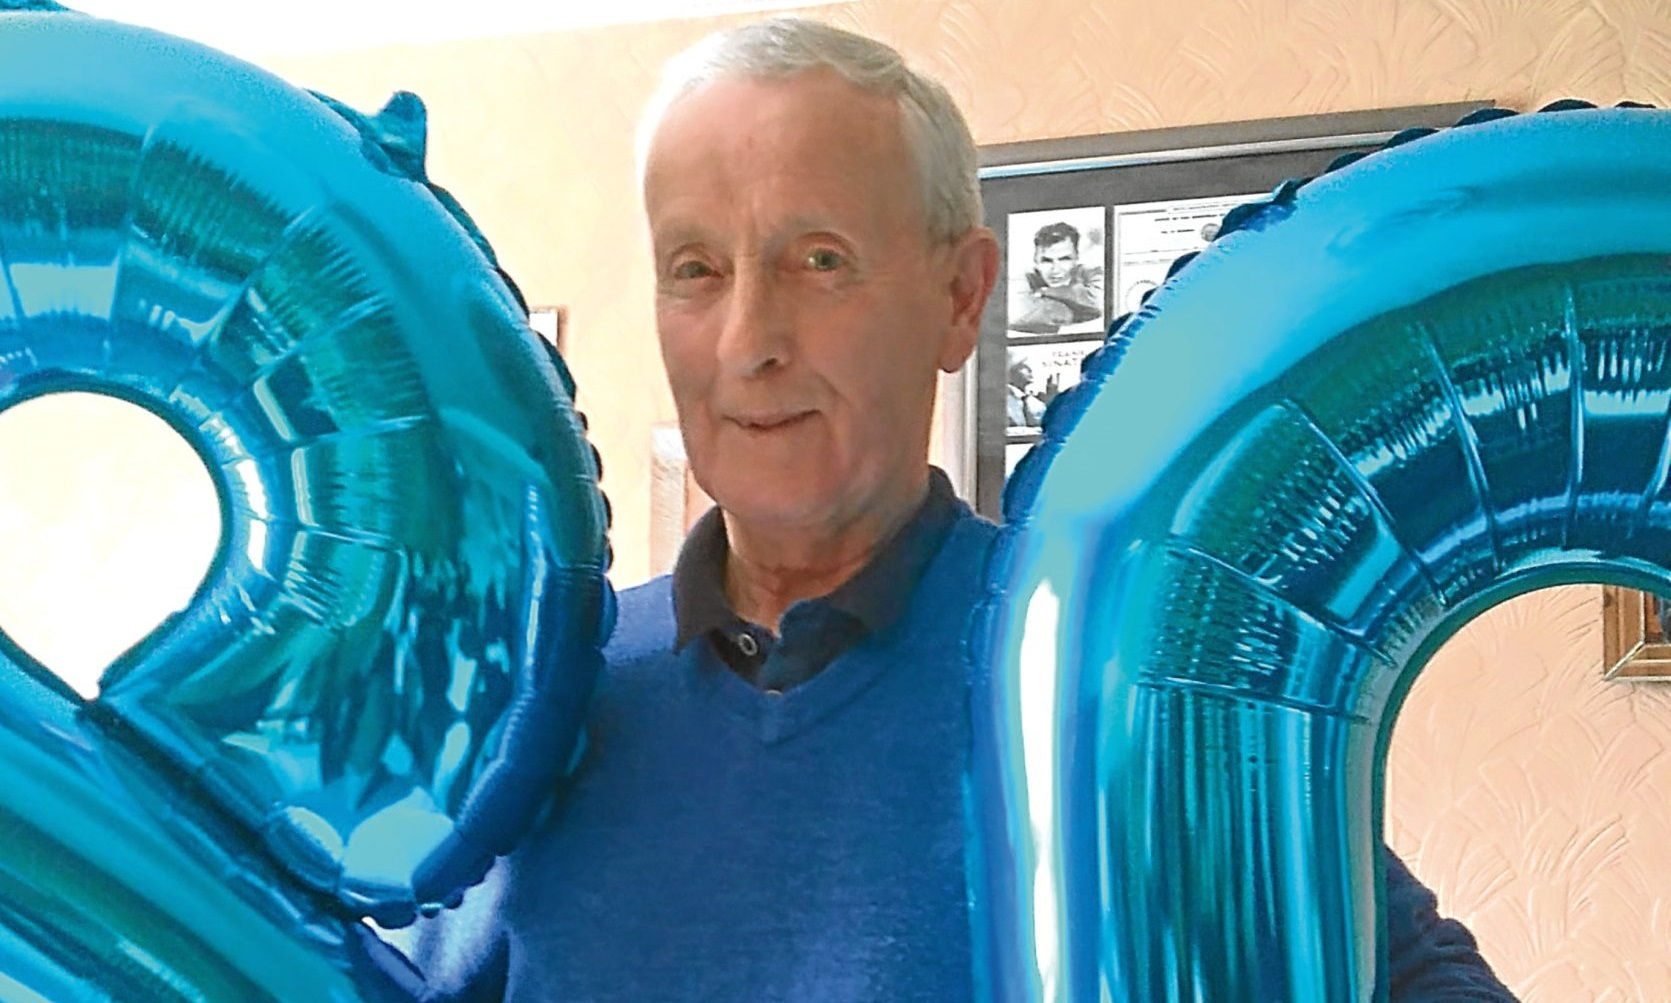 Tam at home with inflatable numbers indicating his age